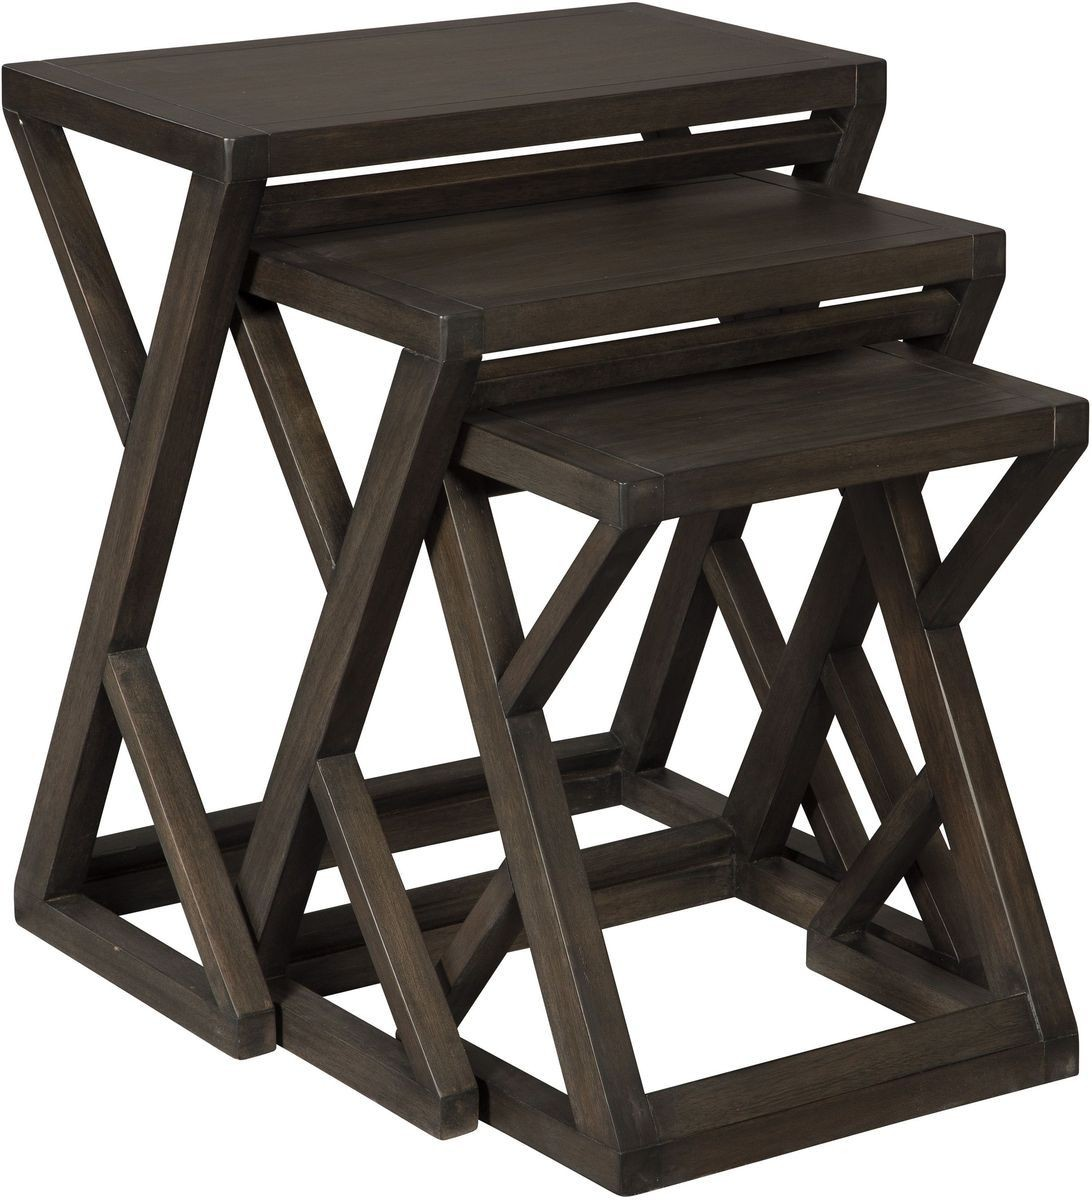 ashley furniture cairnburg accent table brown new home tables office desk pier one imports coffee west elm round outdoor mosaic bistro set wooden garden sets tall mirrored dresser